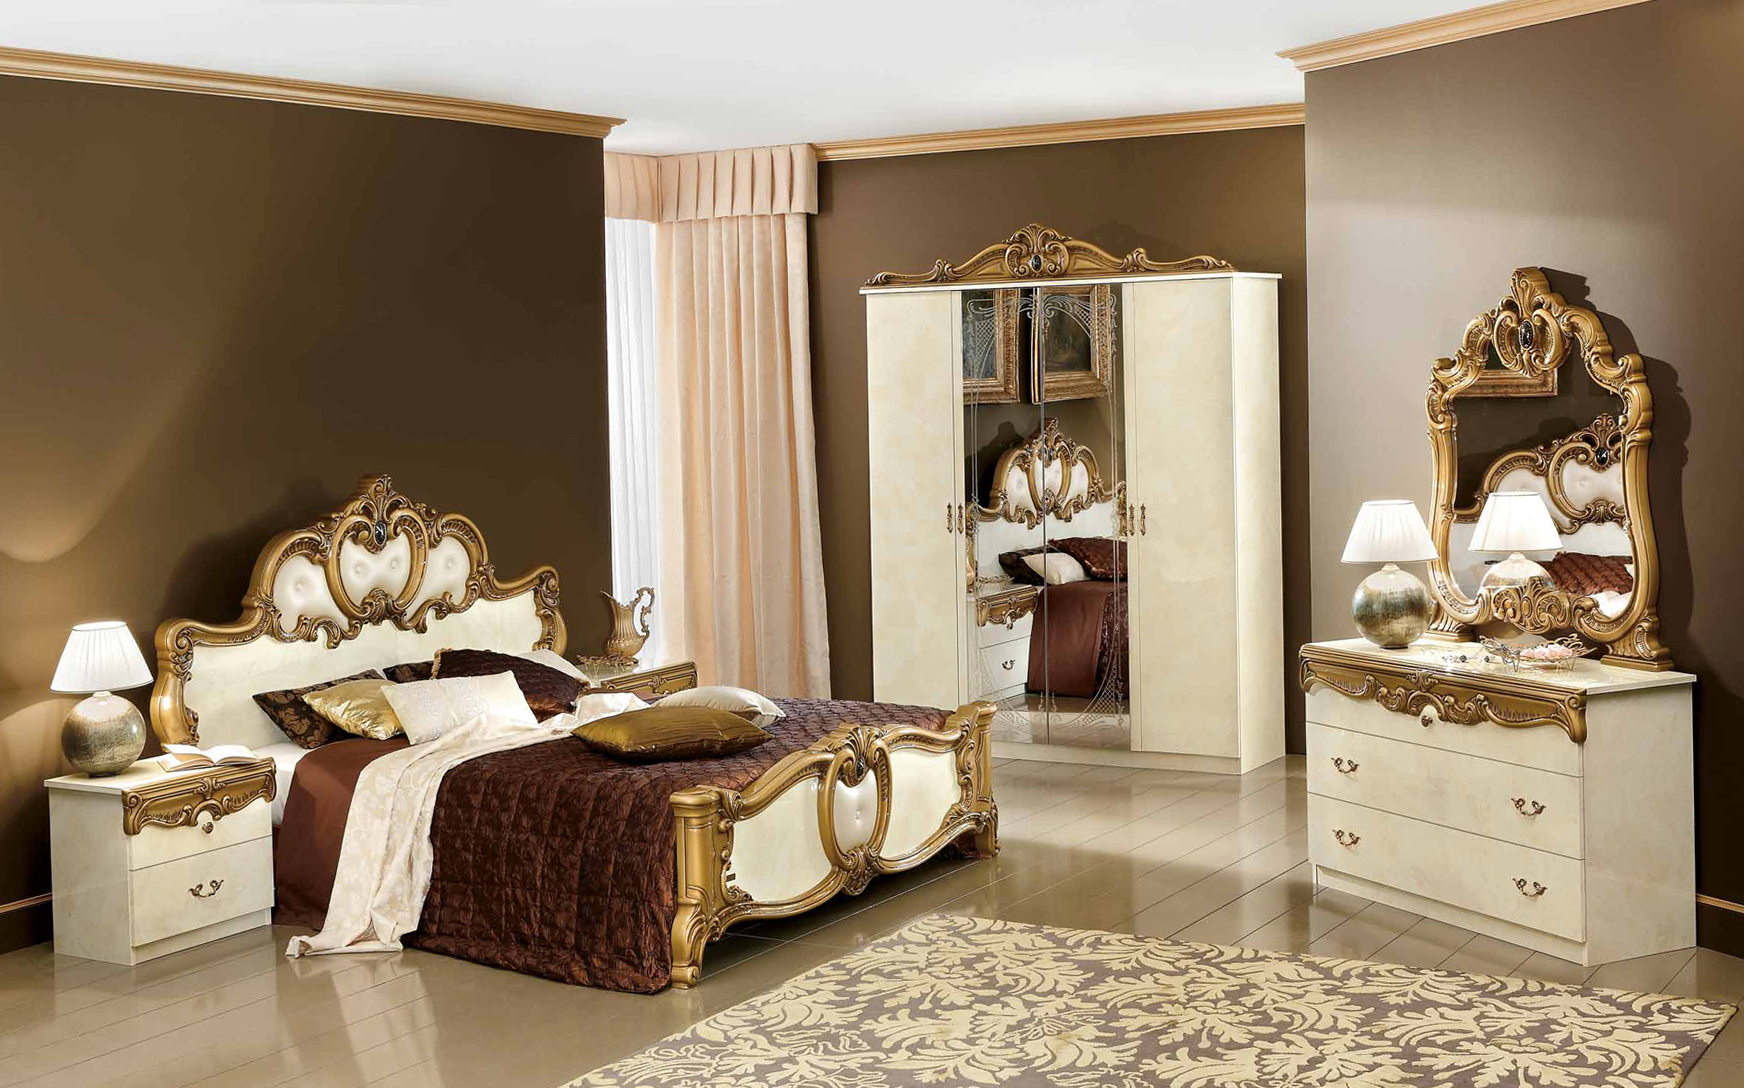 master bedroom, luxury lifestyle master bedroom Artisan Metal Work Furniture For Your Master Bedroom Mirrored Bedroom Furniture Antique